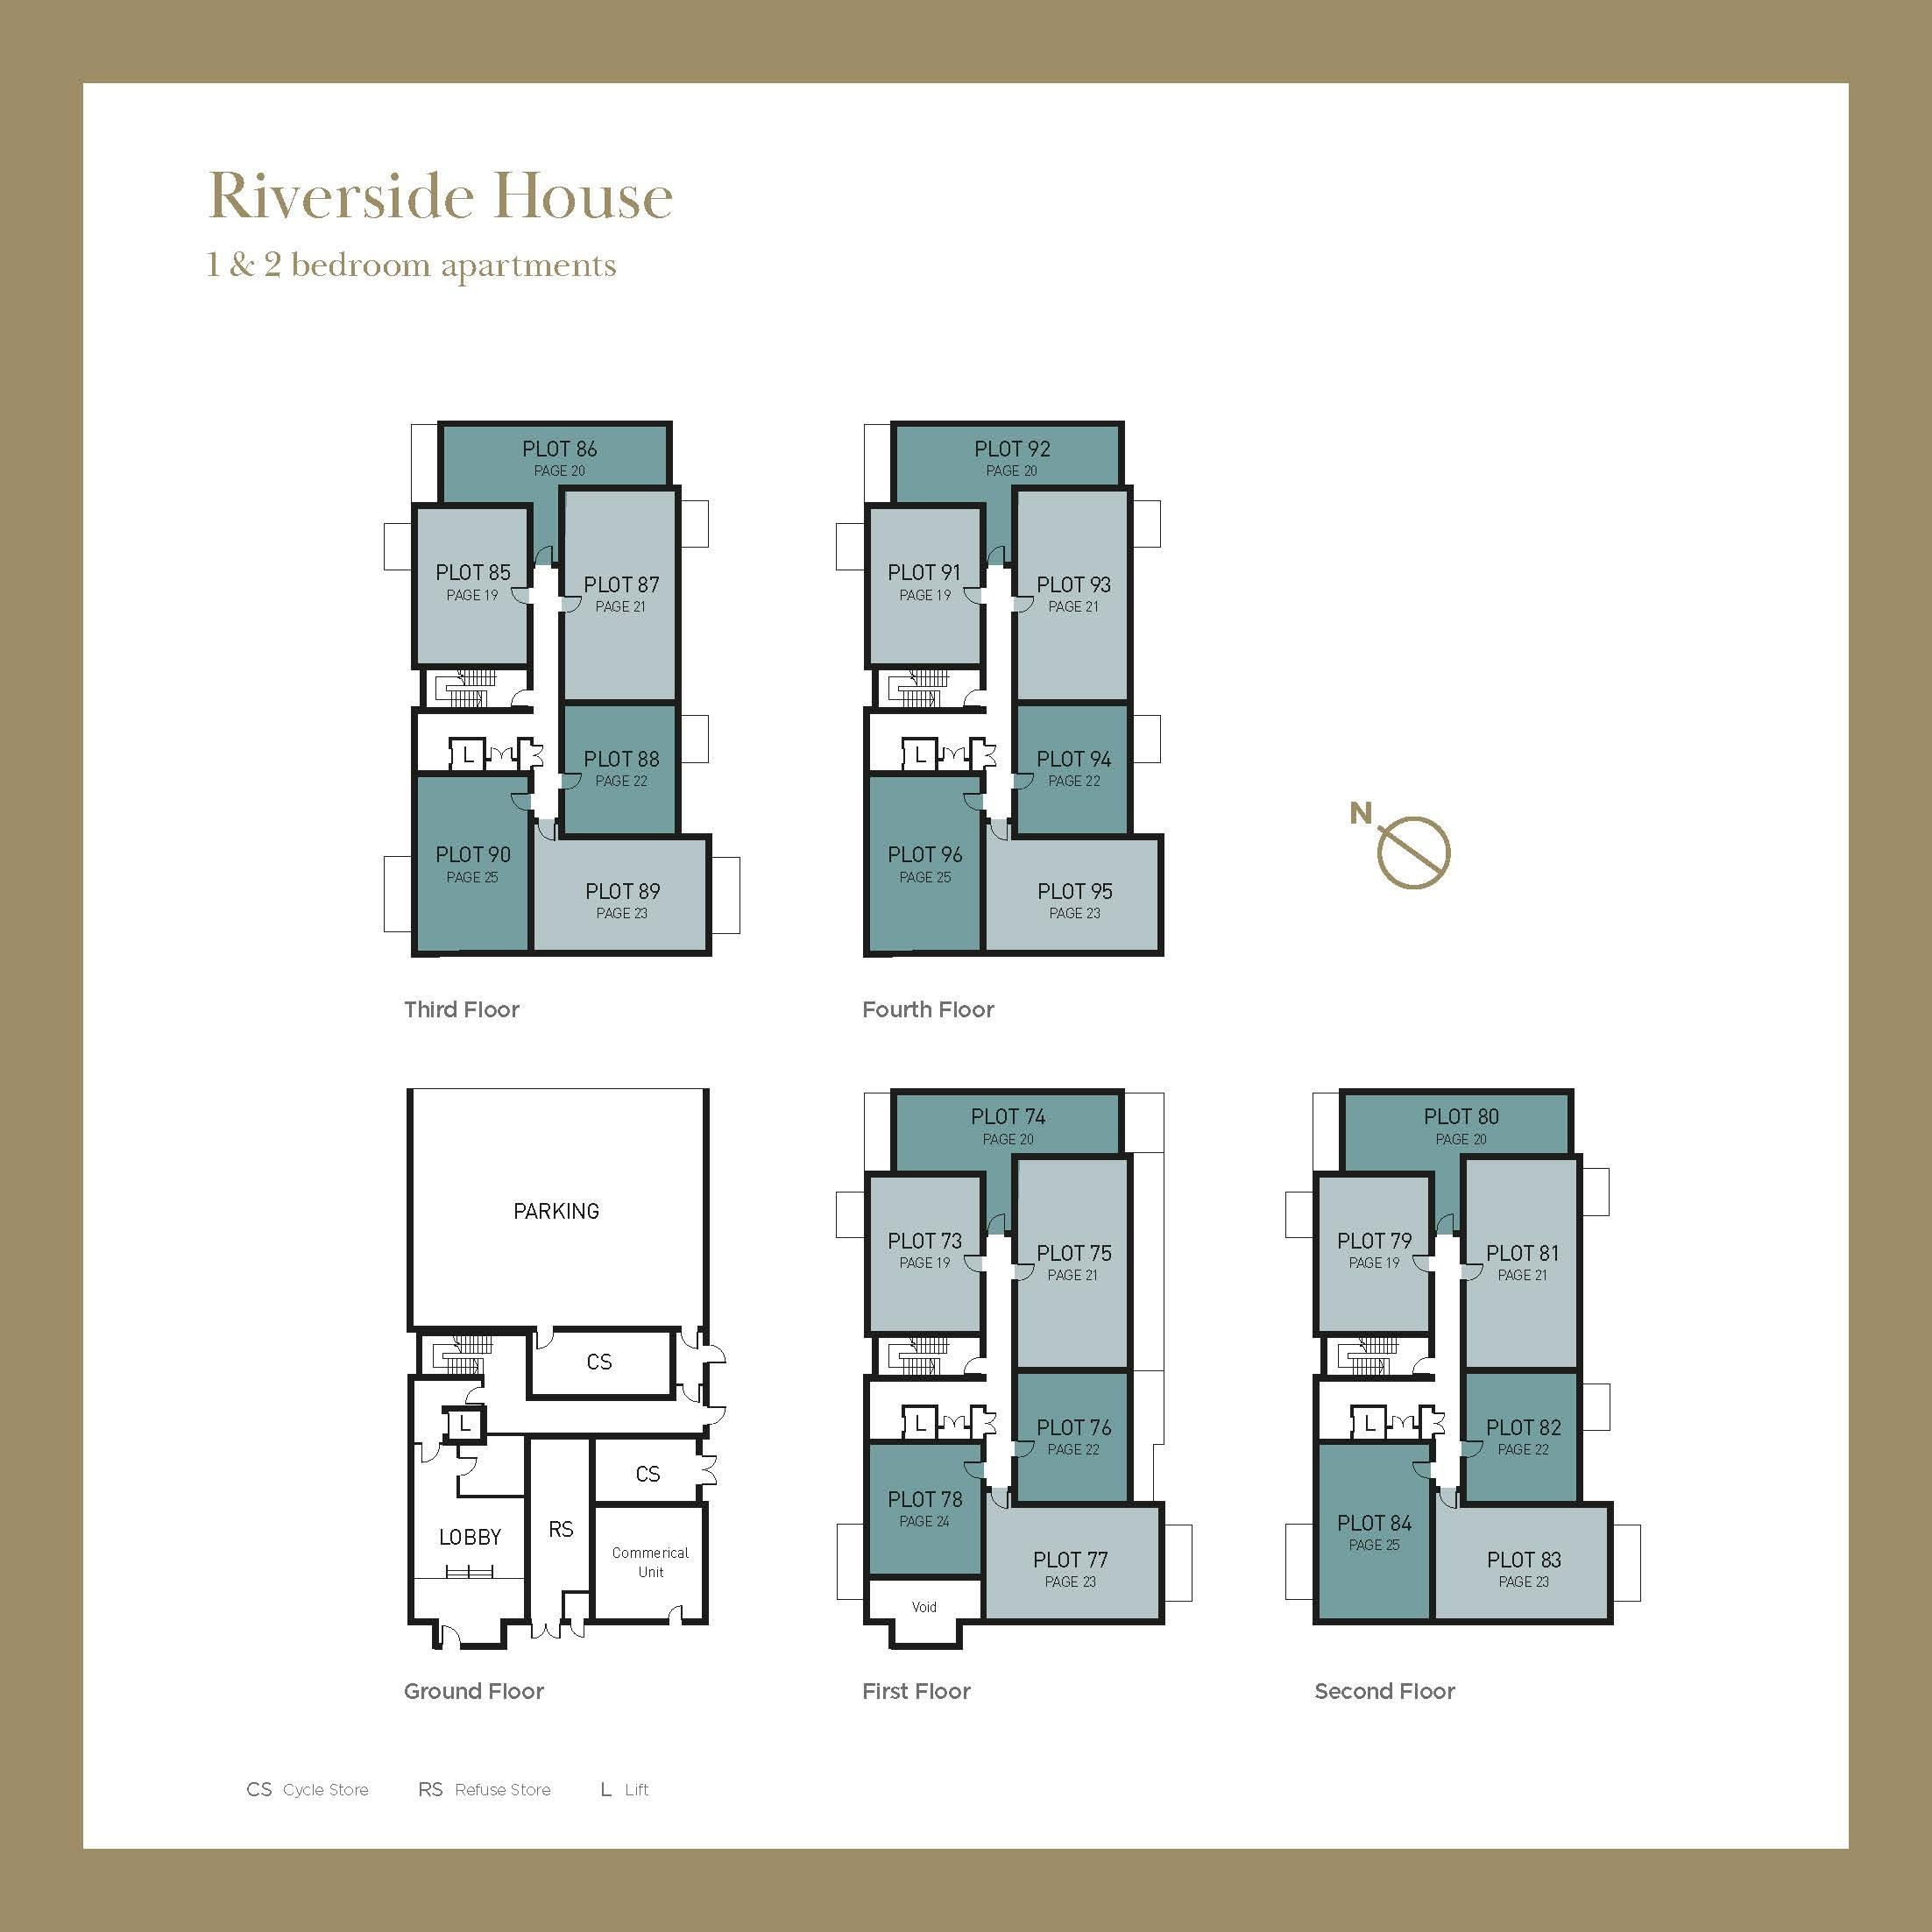 Riverside House Plot Locator